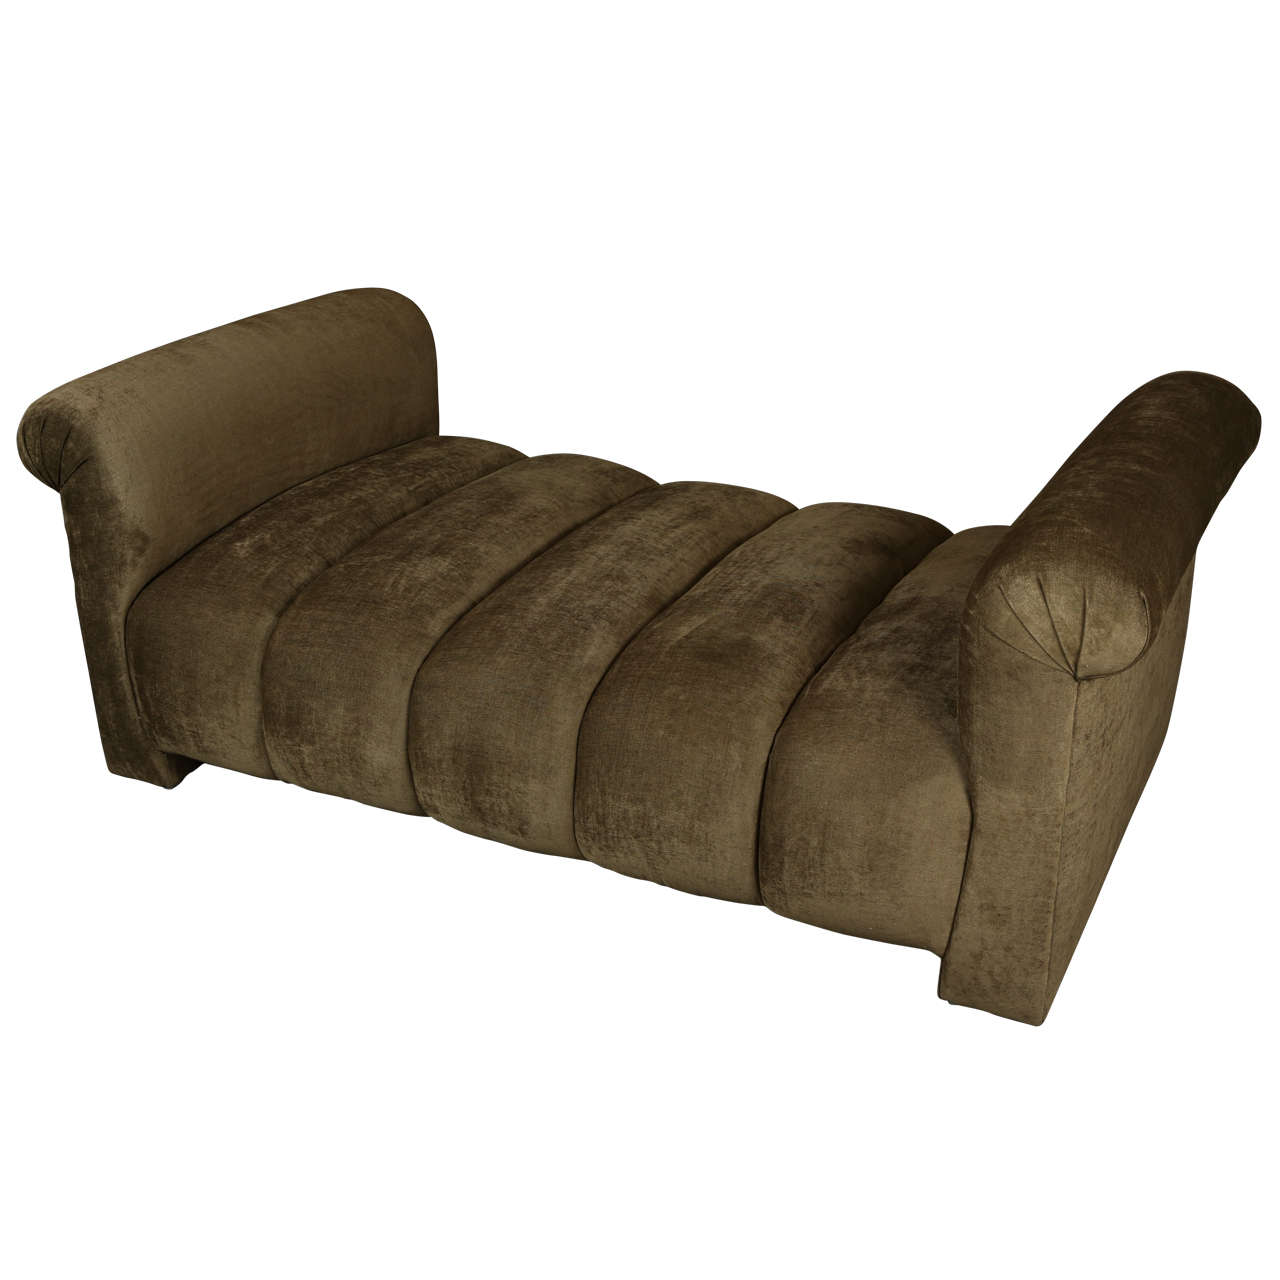 Custom Designed Large Upholstered Chaise Lounge / Day Bed by Steve Chase